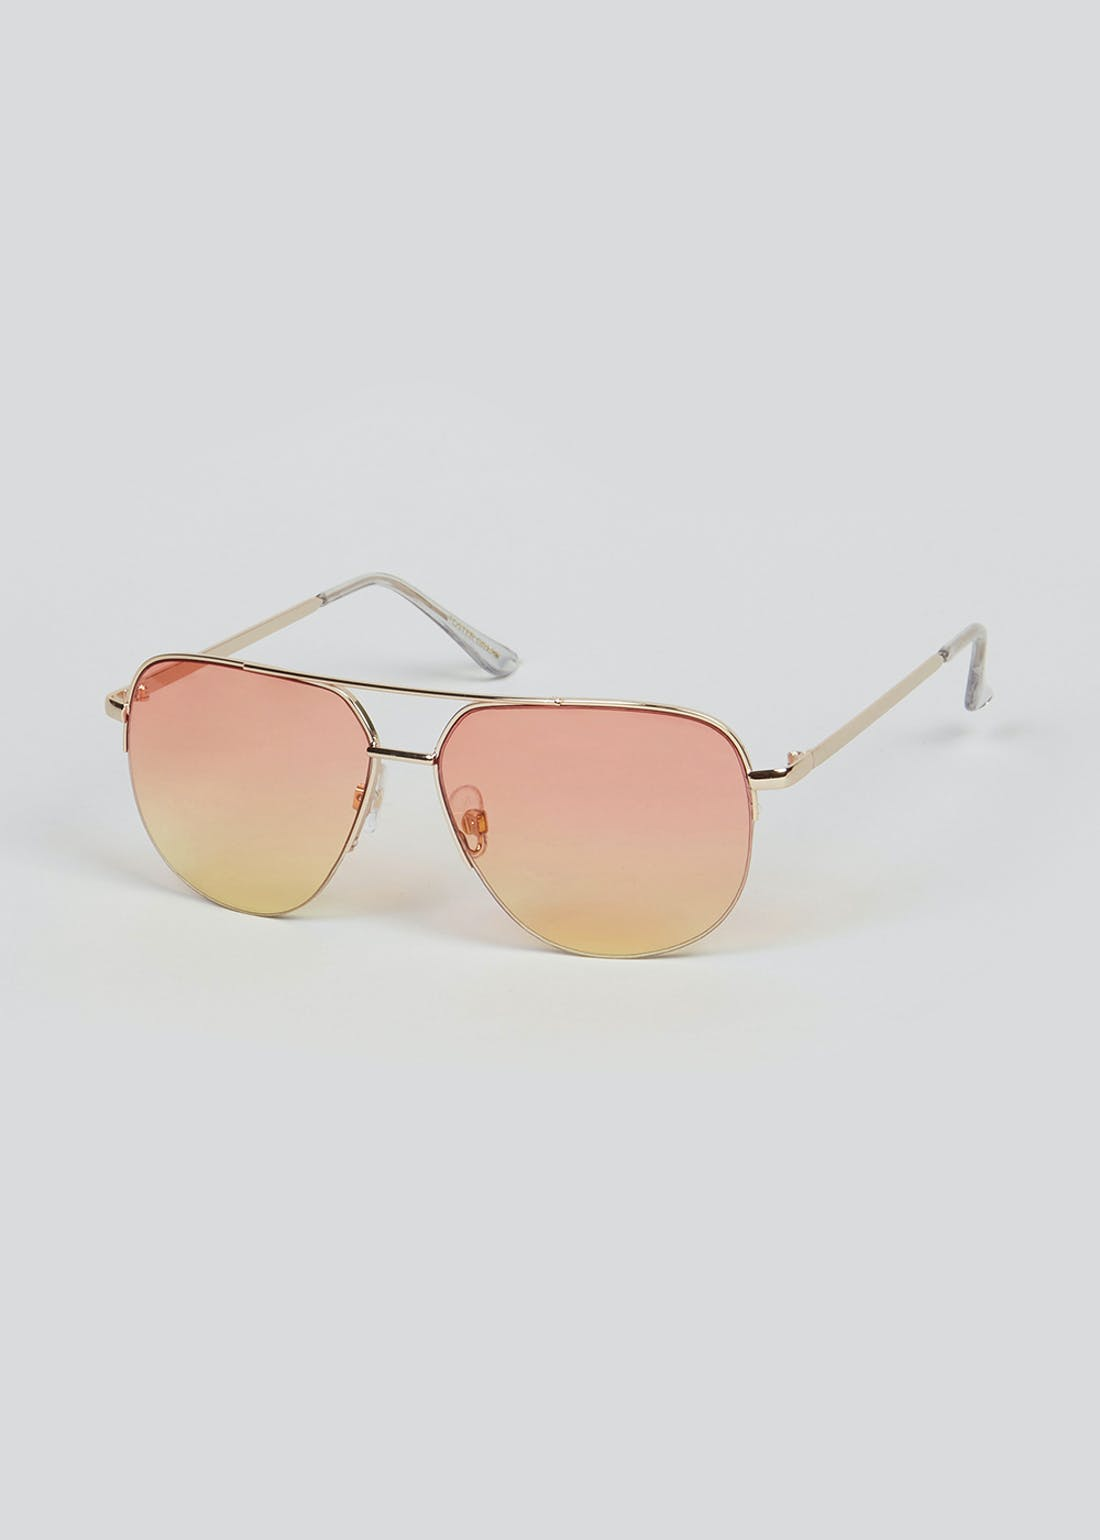 Foster Grant Frosted Wooden Arm Sunglasses